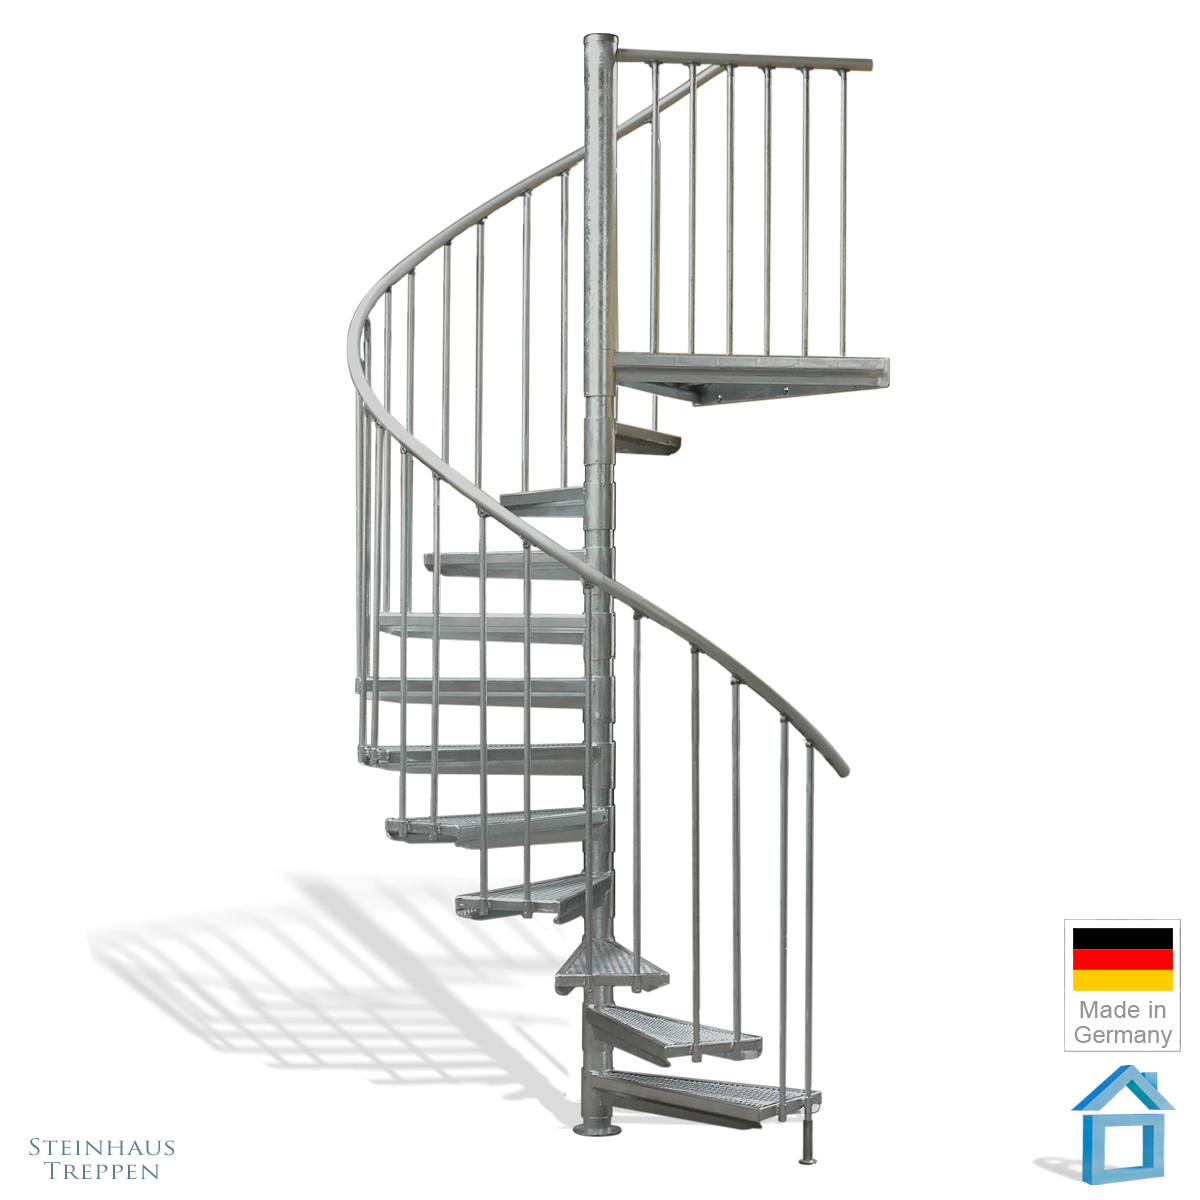 stahl wendeltreppe am balkon 160 cm durchmesser bis 282 cm h he gh max 446 cm steinhaus. Black Bedroom Furniture Sets. Home Design Ideas